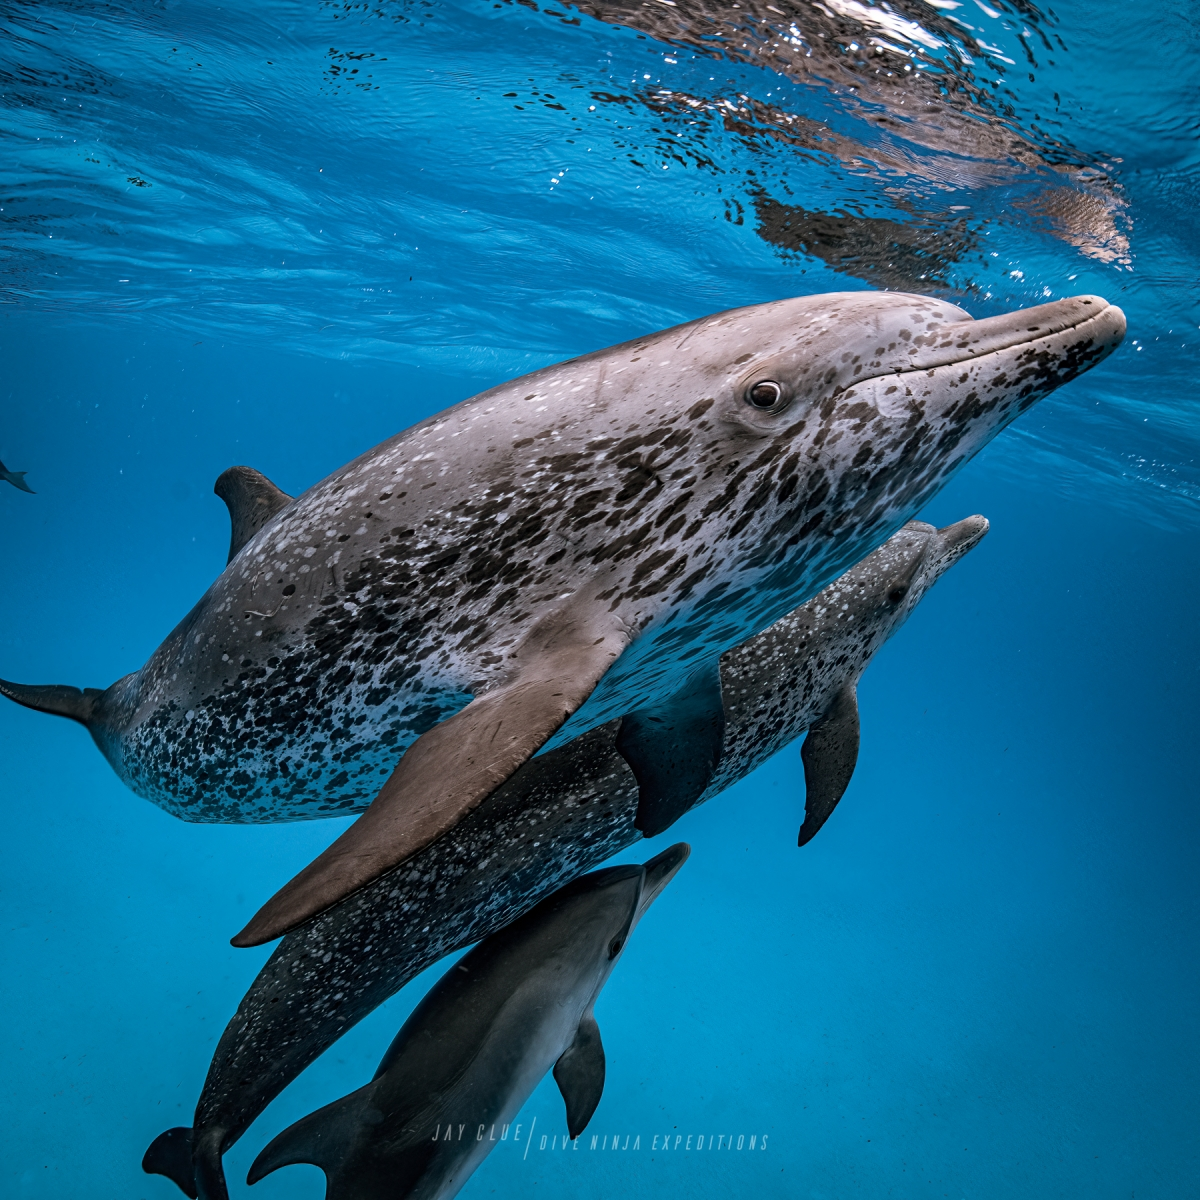 Atlantic spotted dolphins in Bimini. Photo by Jay Clue